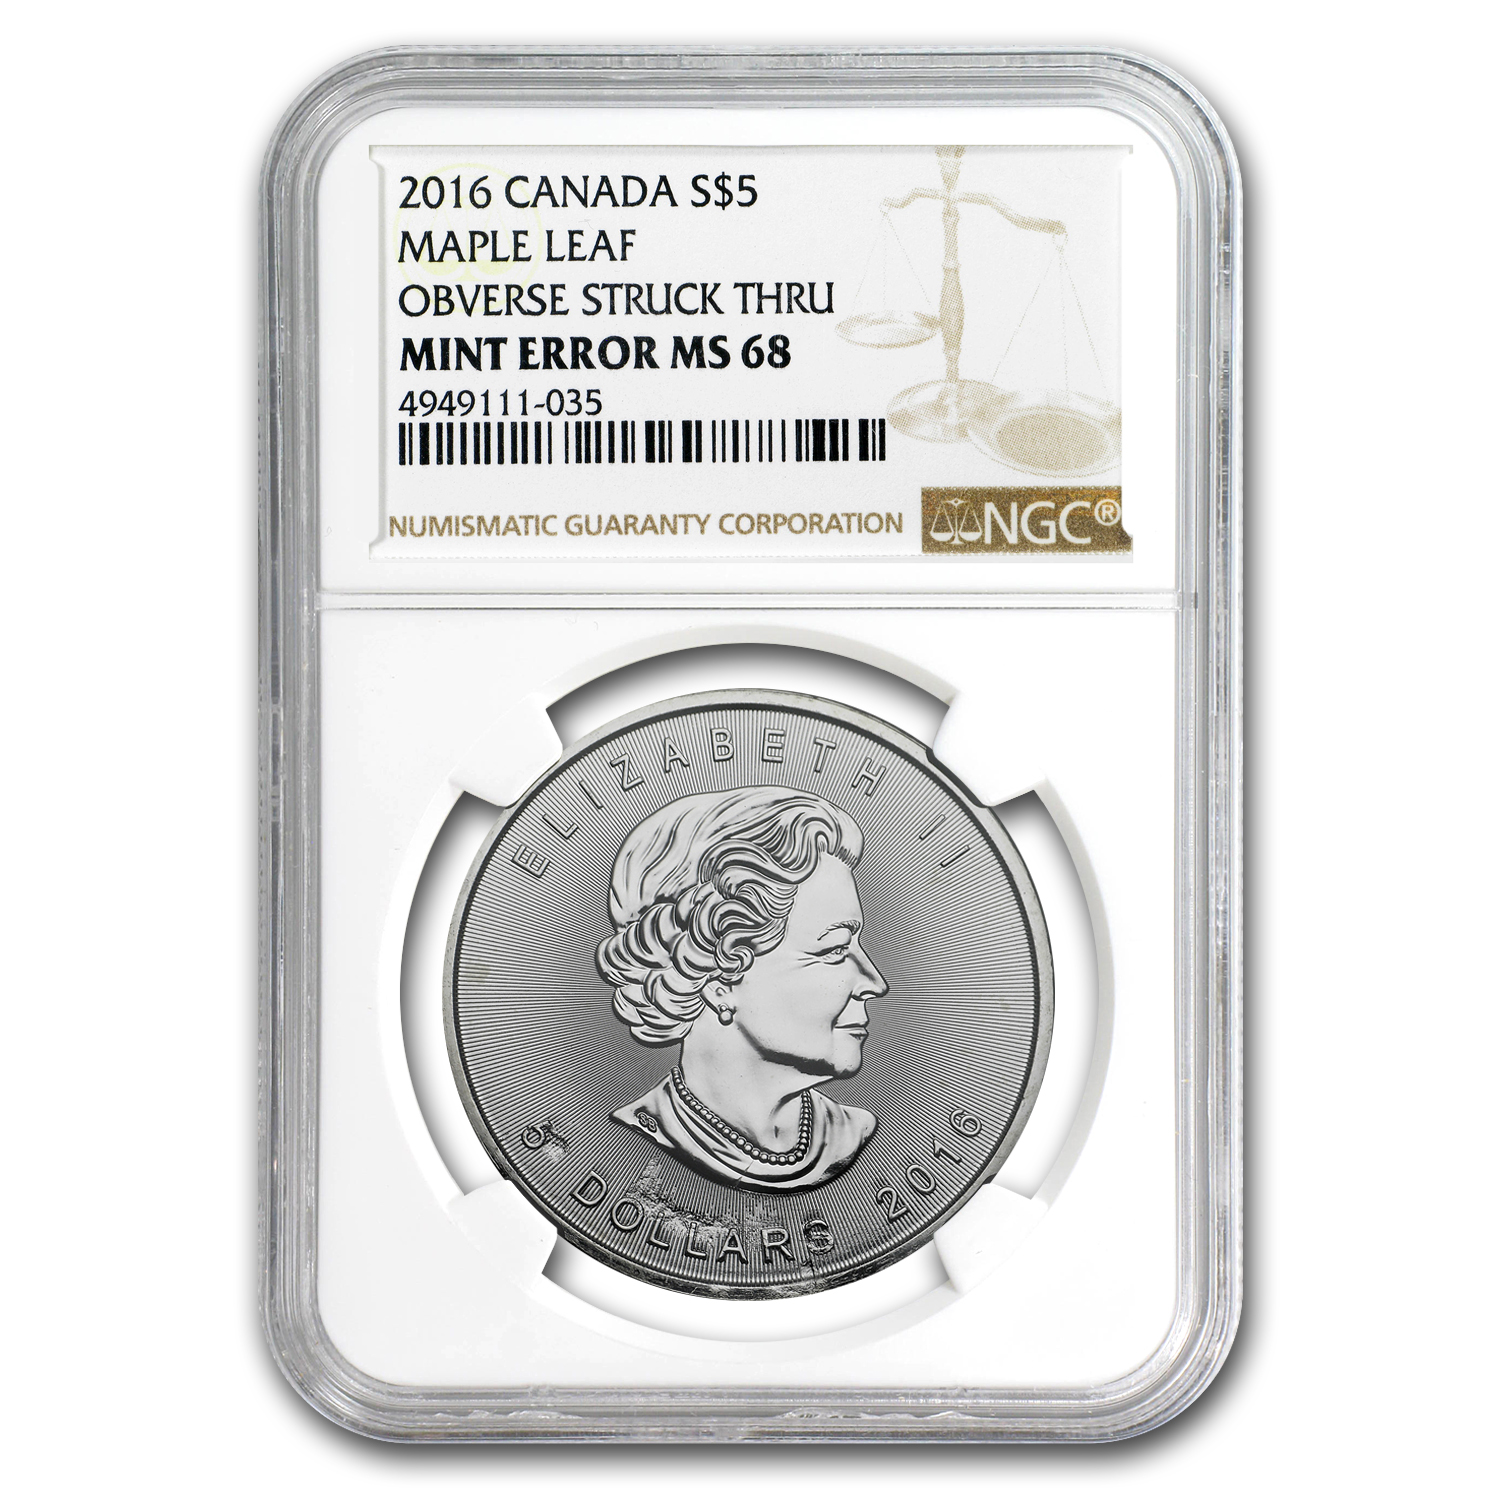 2016 Canada 1 oz Silver Maple Leaf MS-68 NGC (Obv Mint Error)